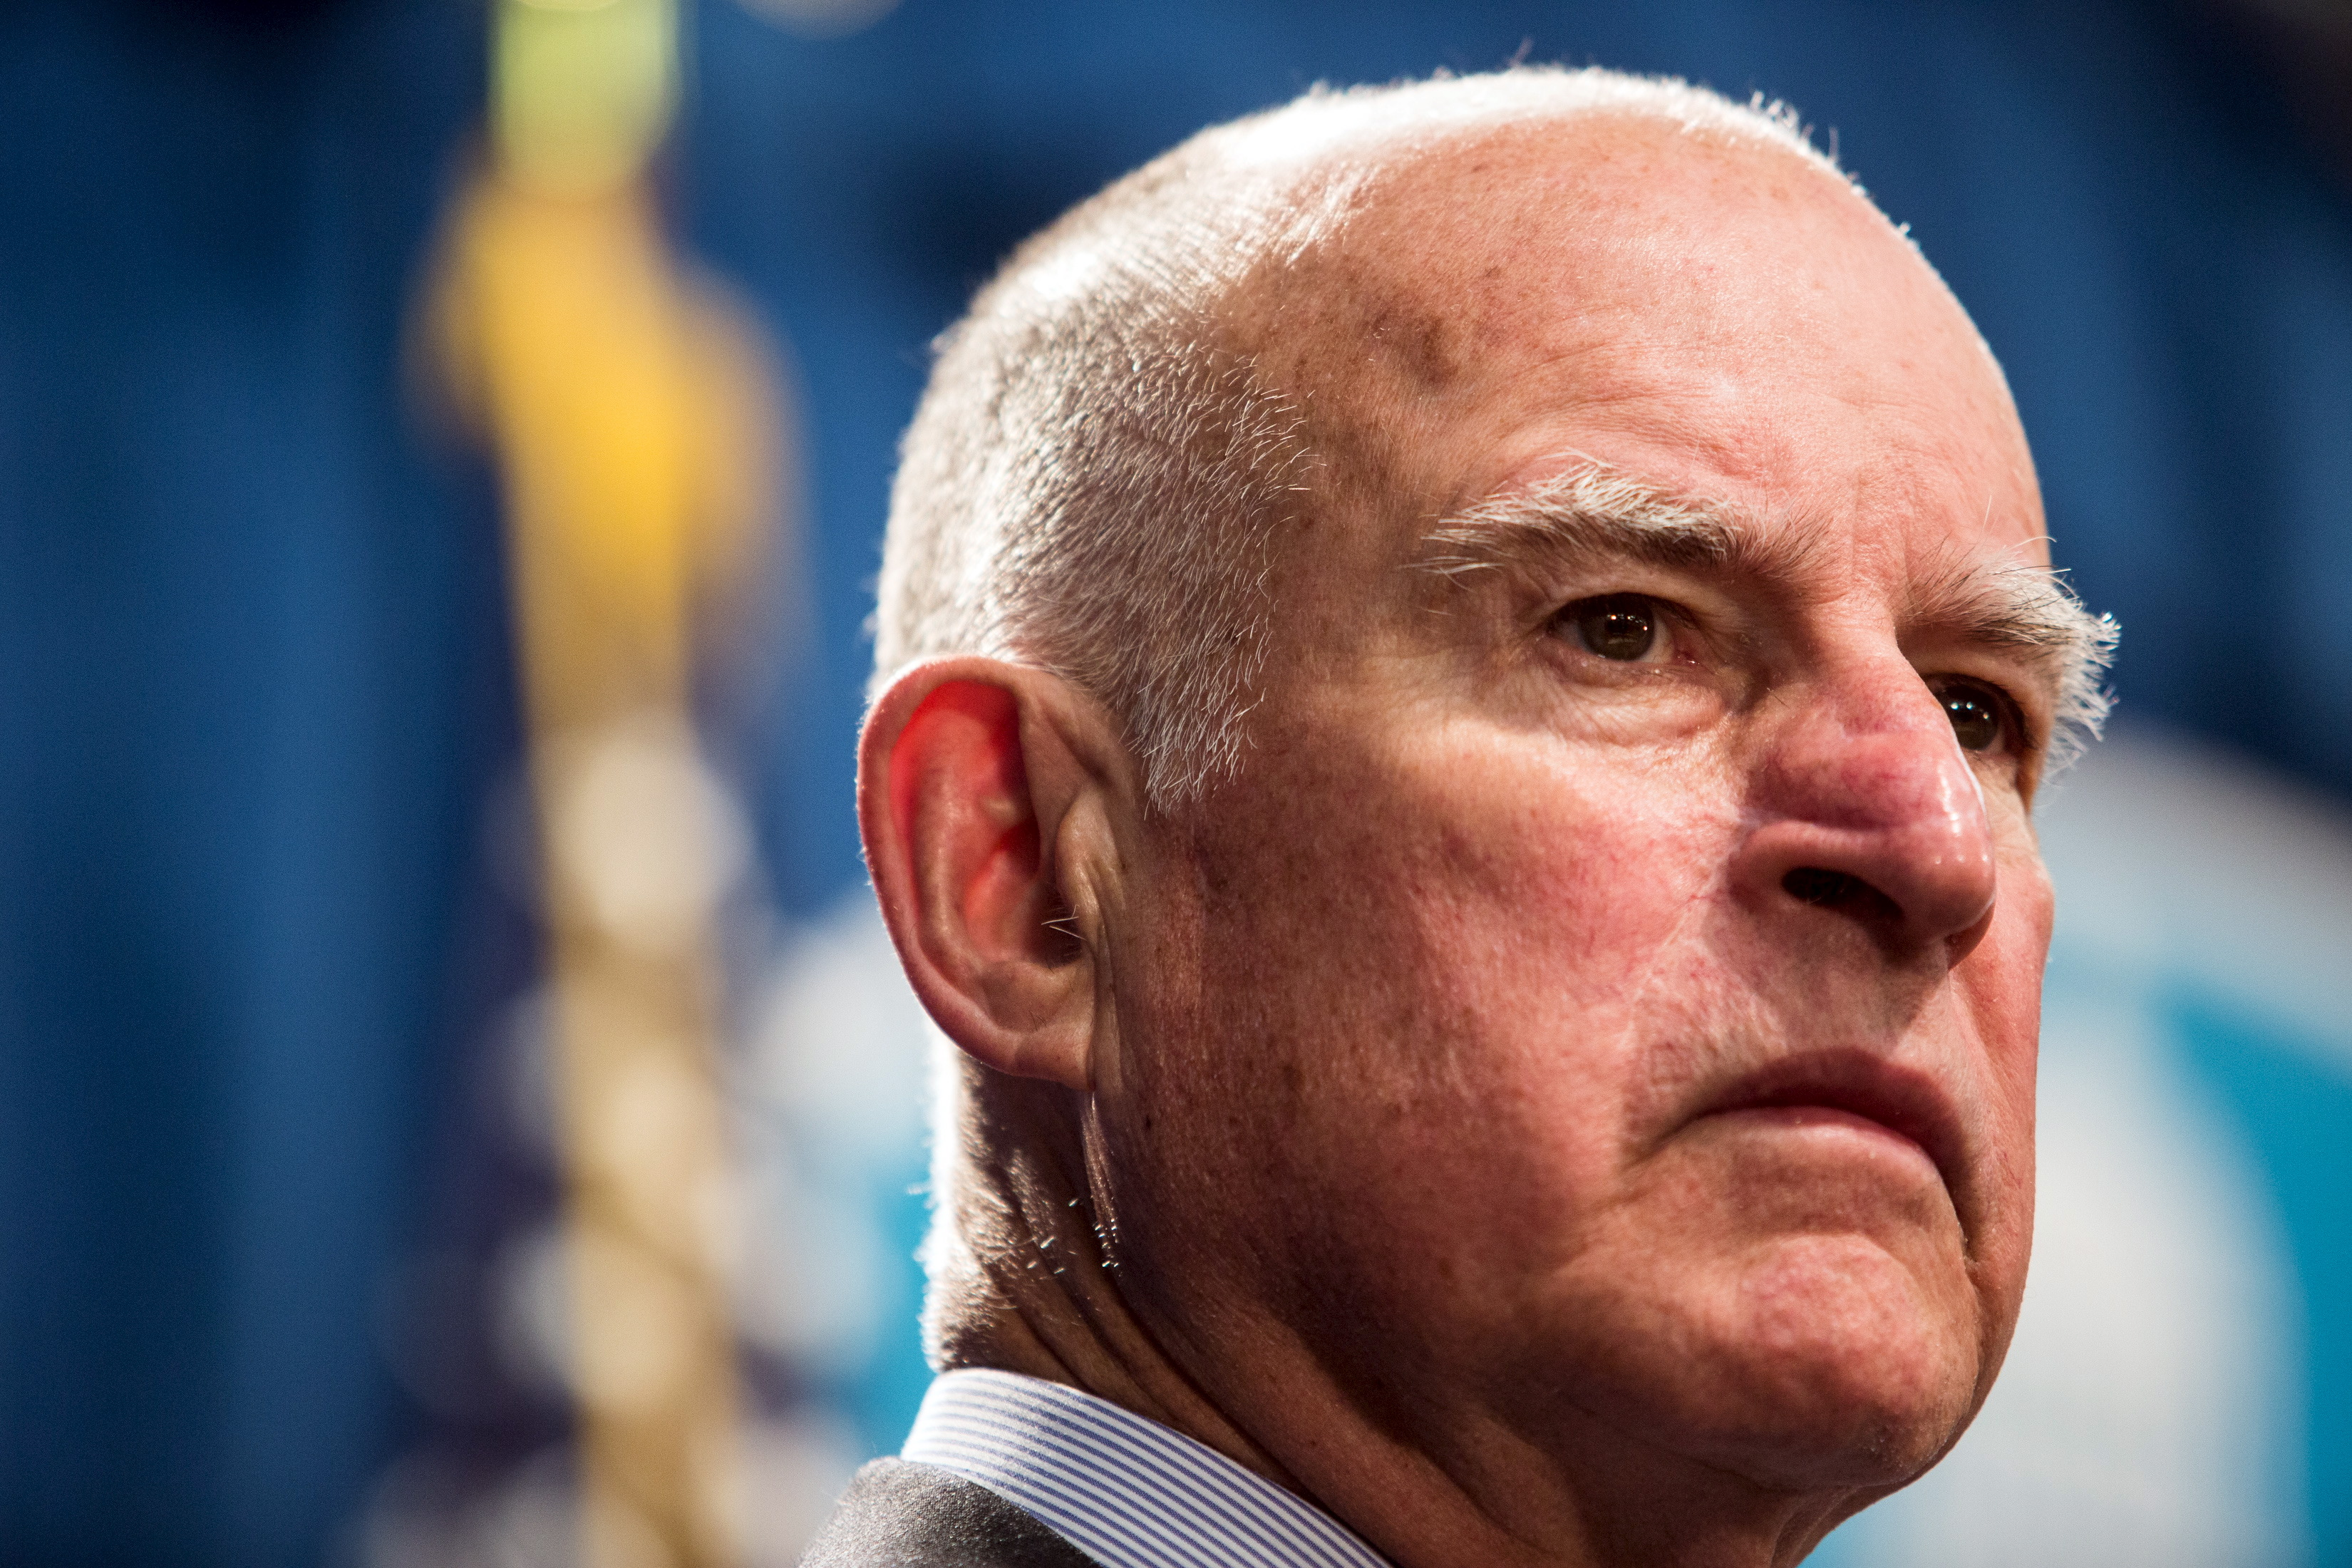 Knowingly Exposing Others to HIV will be Reduced to a Misdemeanor in California